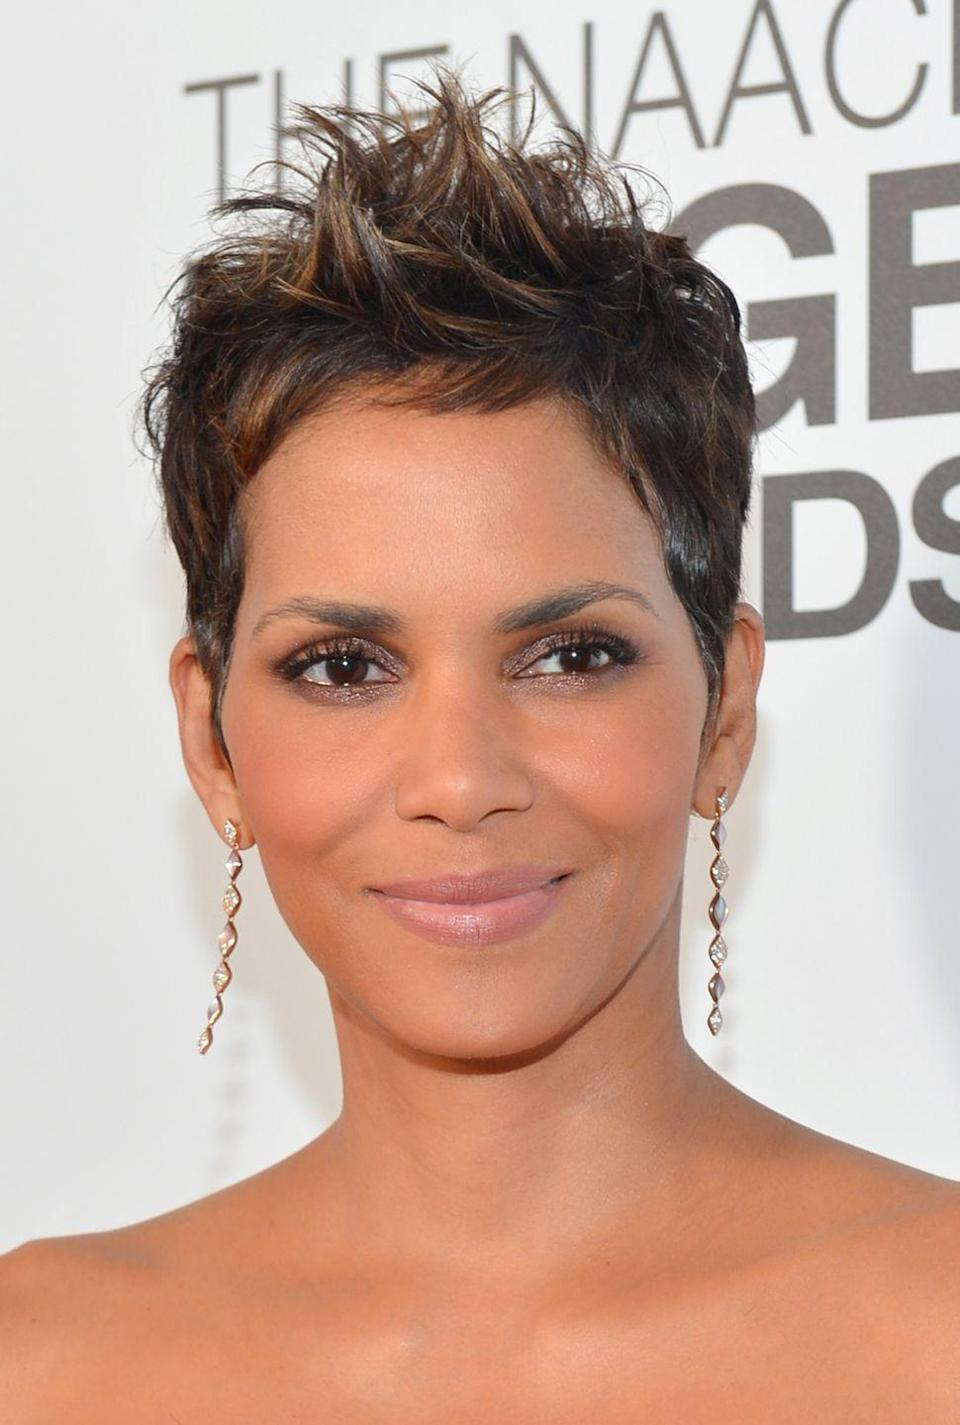 <p>Go spiky yet simple with actress <strong>Halle Berry</strong>'s iconic highlighted pixie cut. Whether you wear it smooth or muss it up with a bit of wax, this hairstyle is super versatile. </p>